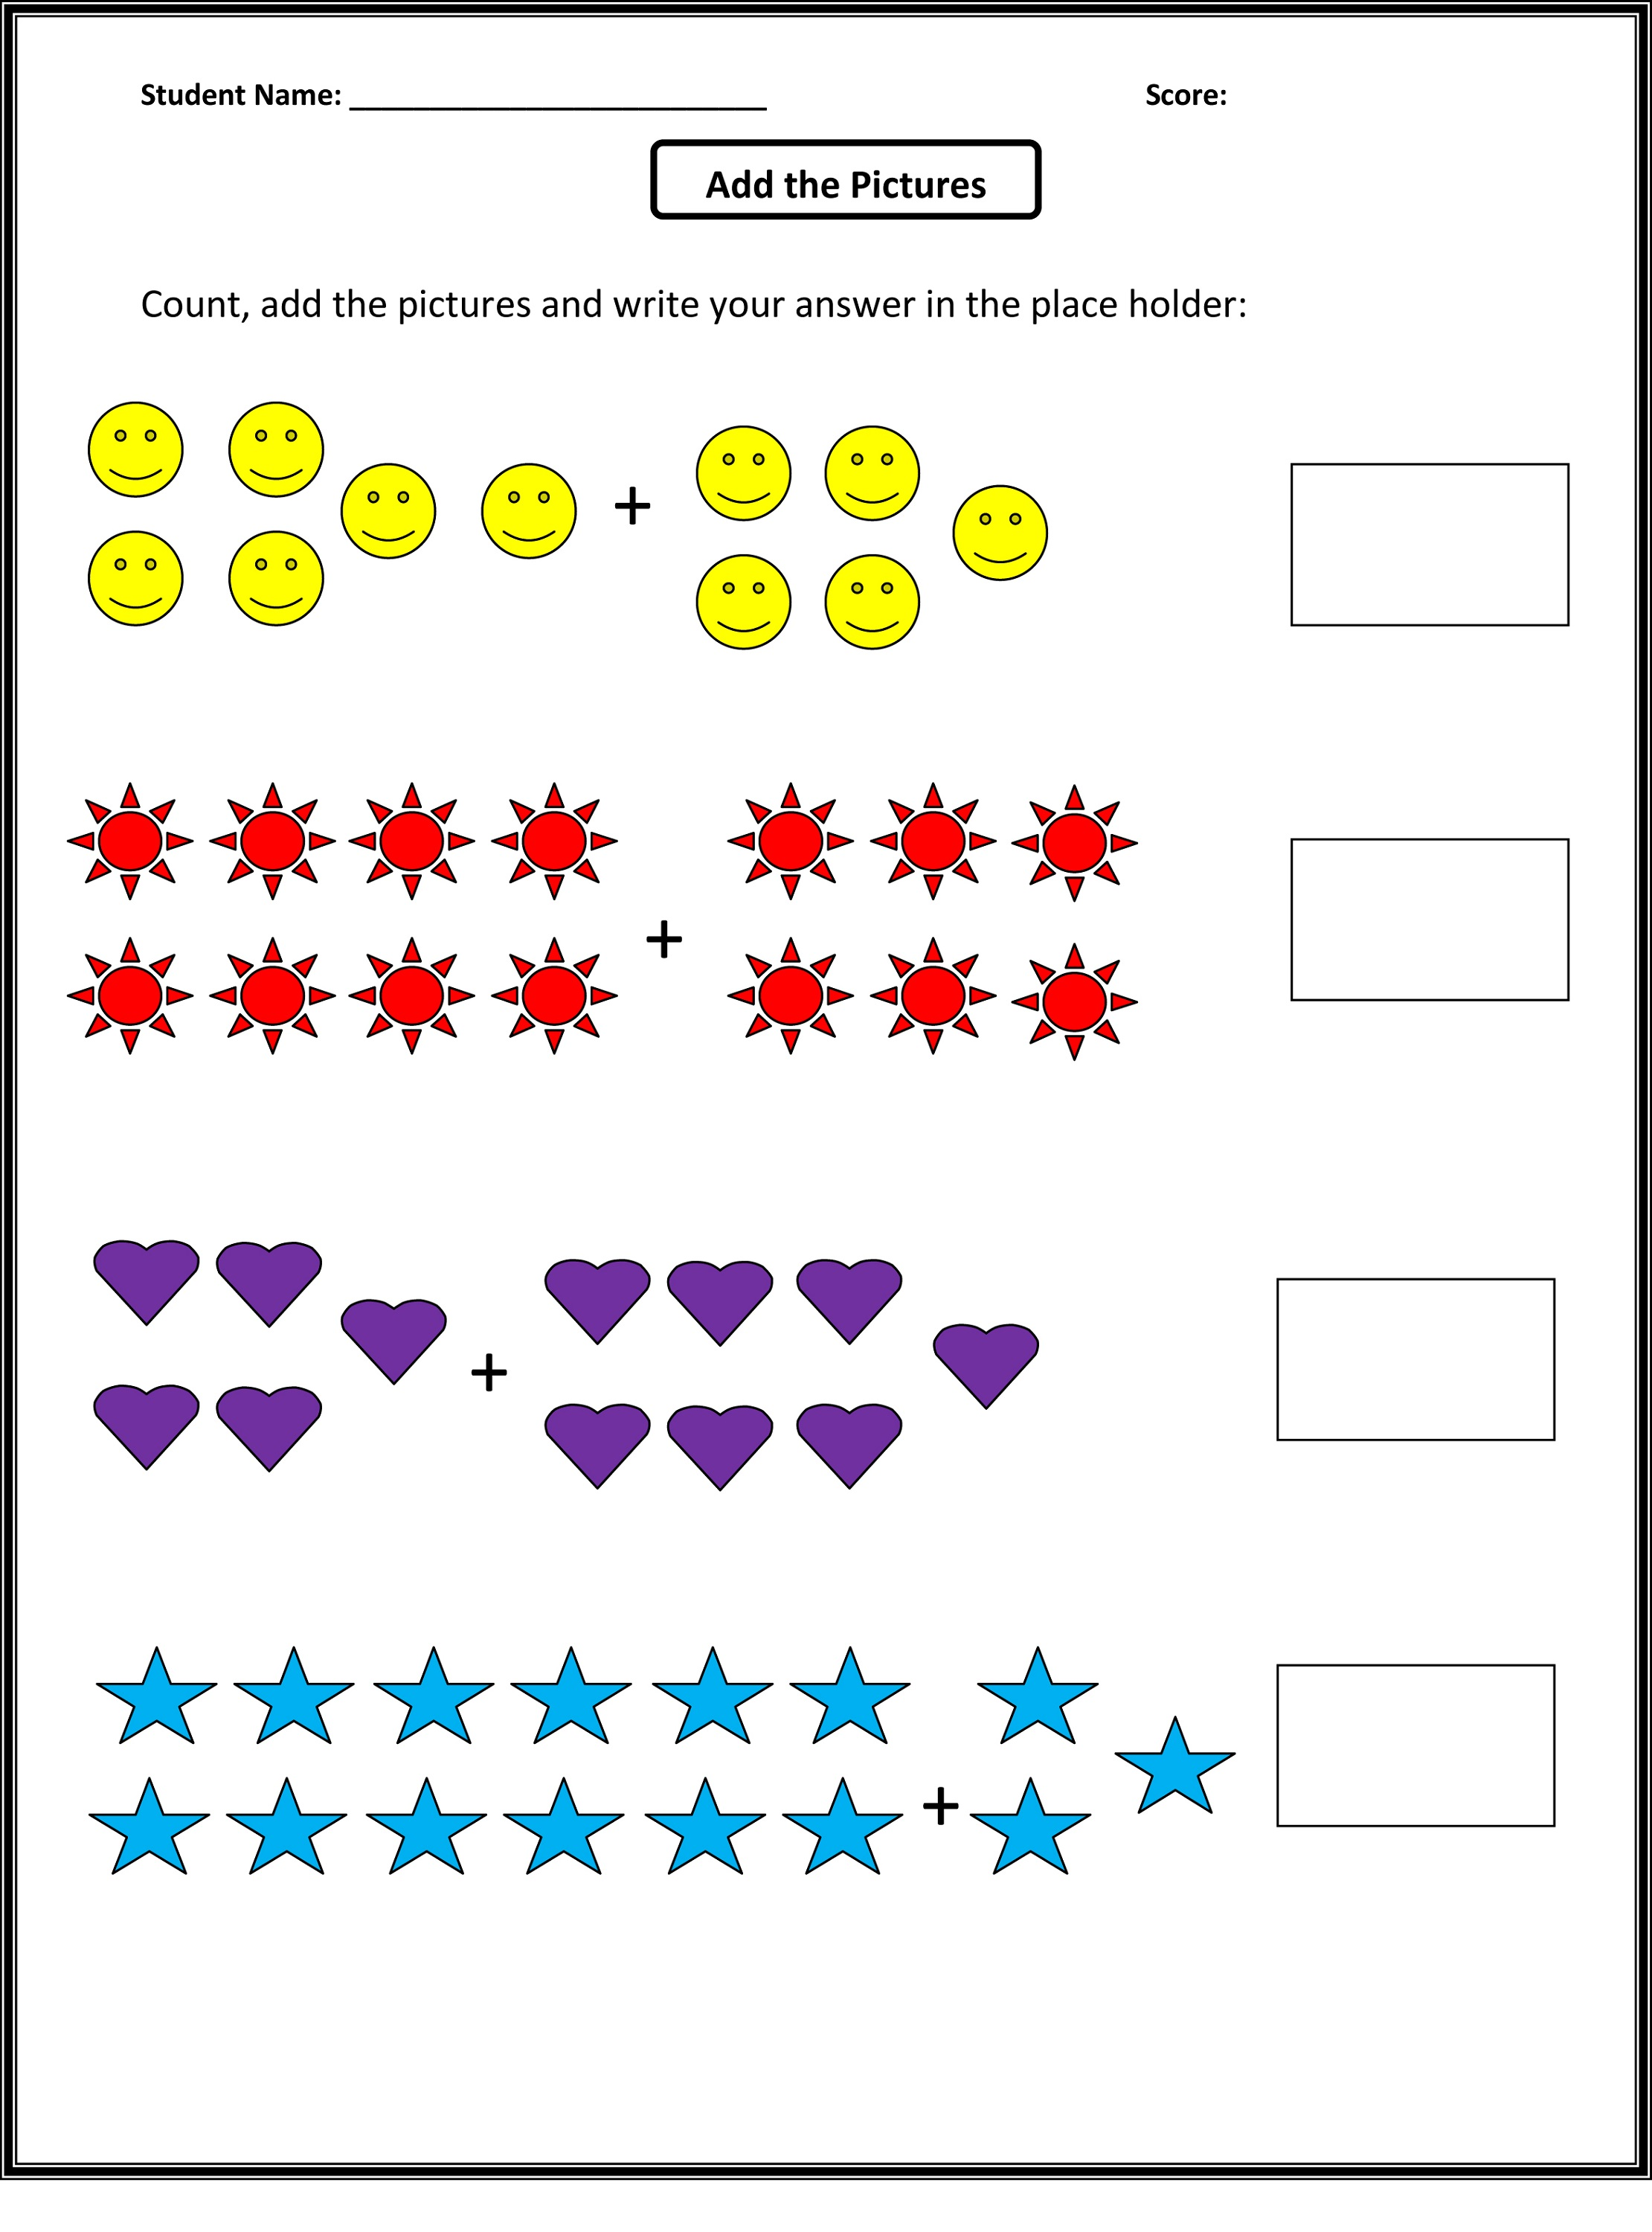 Math For Kids Worksheet Scalien – Fun Math Worksheets for Kids